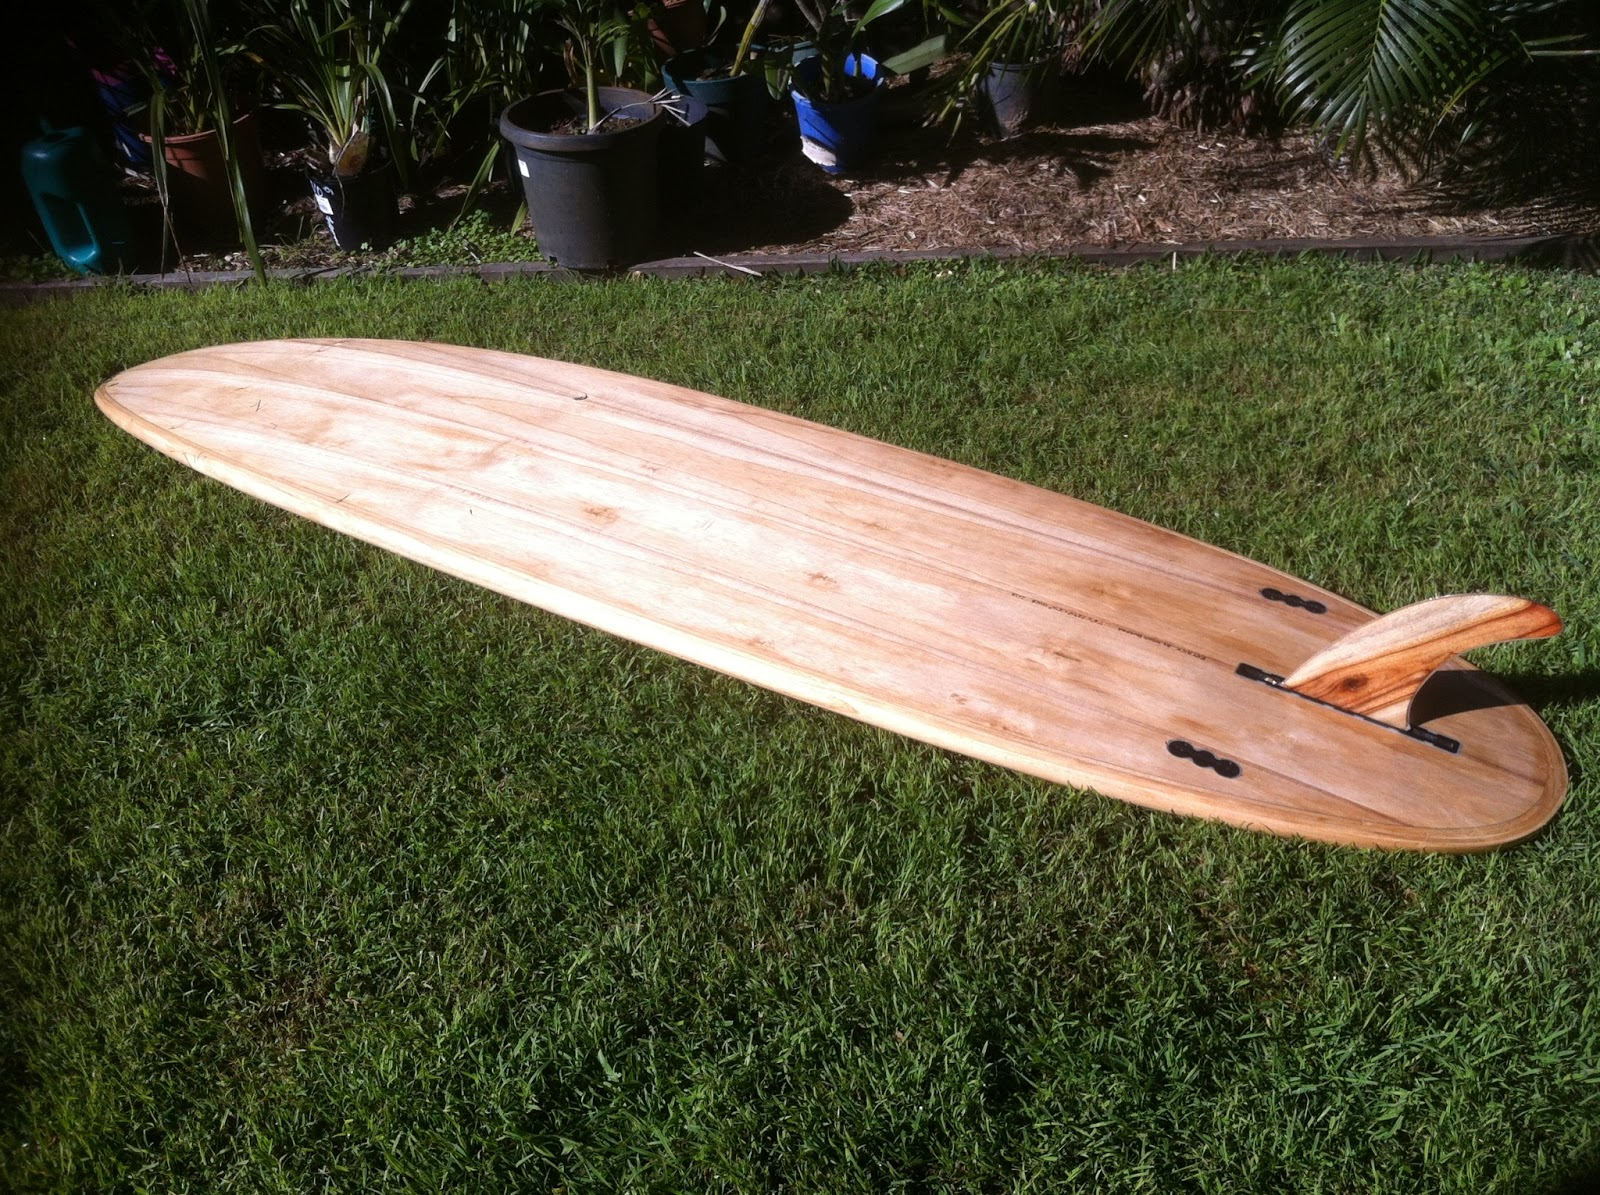 Wood buddha building wood surfboards building a hollow wooden hollow wooden surfboard pronofoot35fo Images